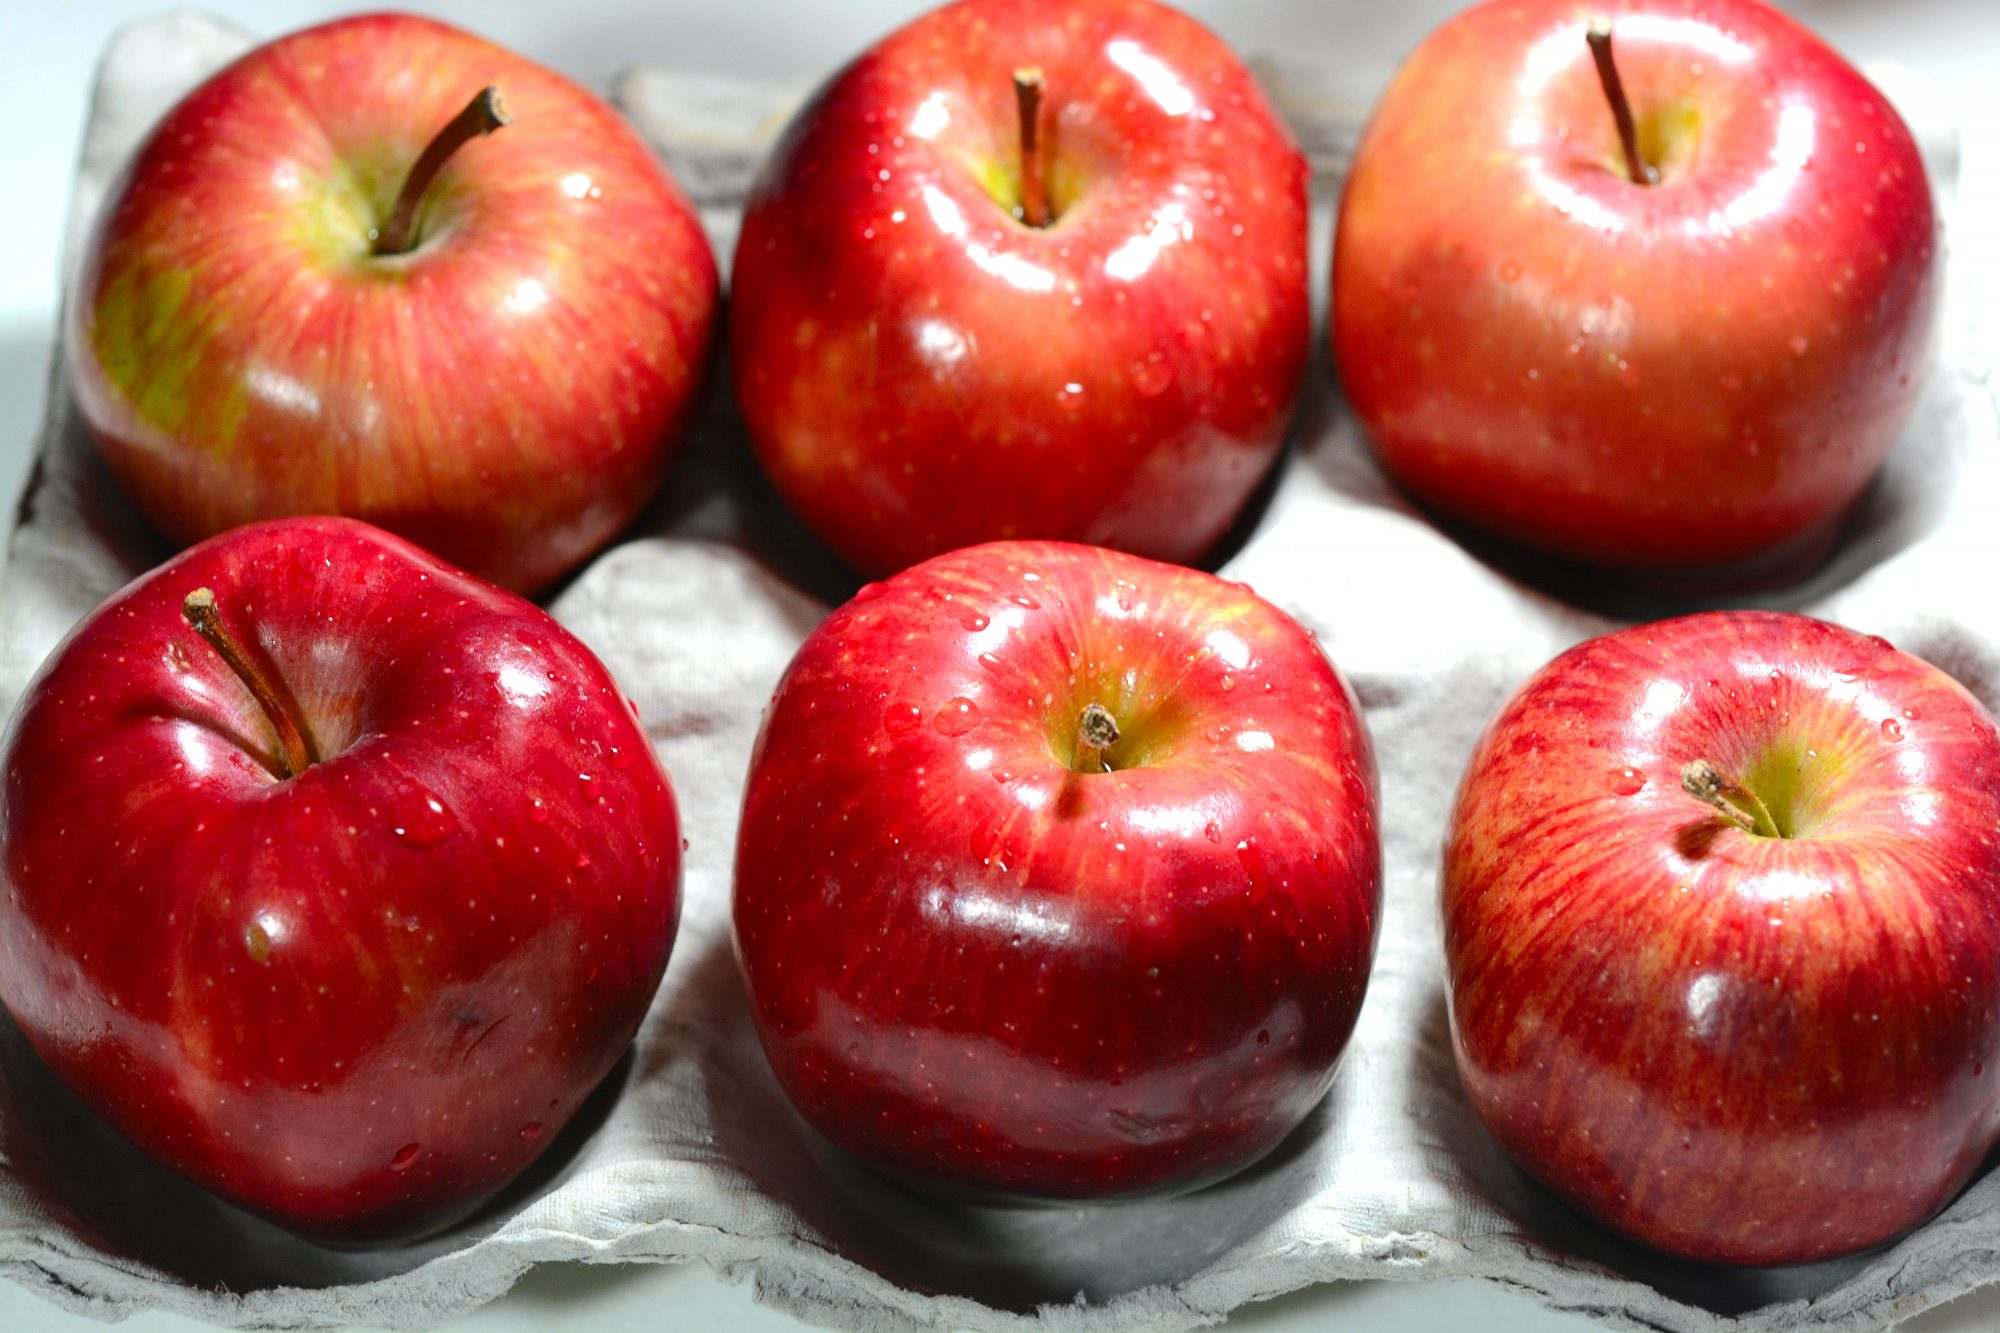 getty red delicious apples image